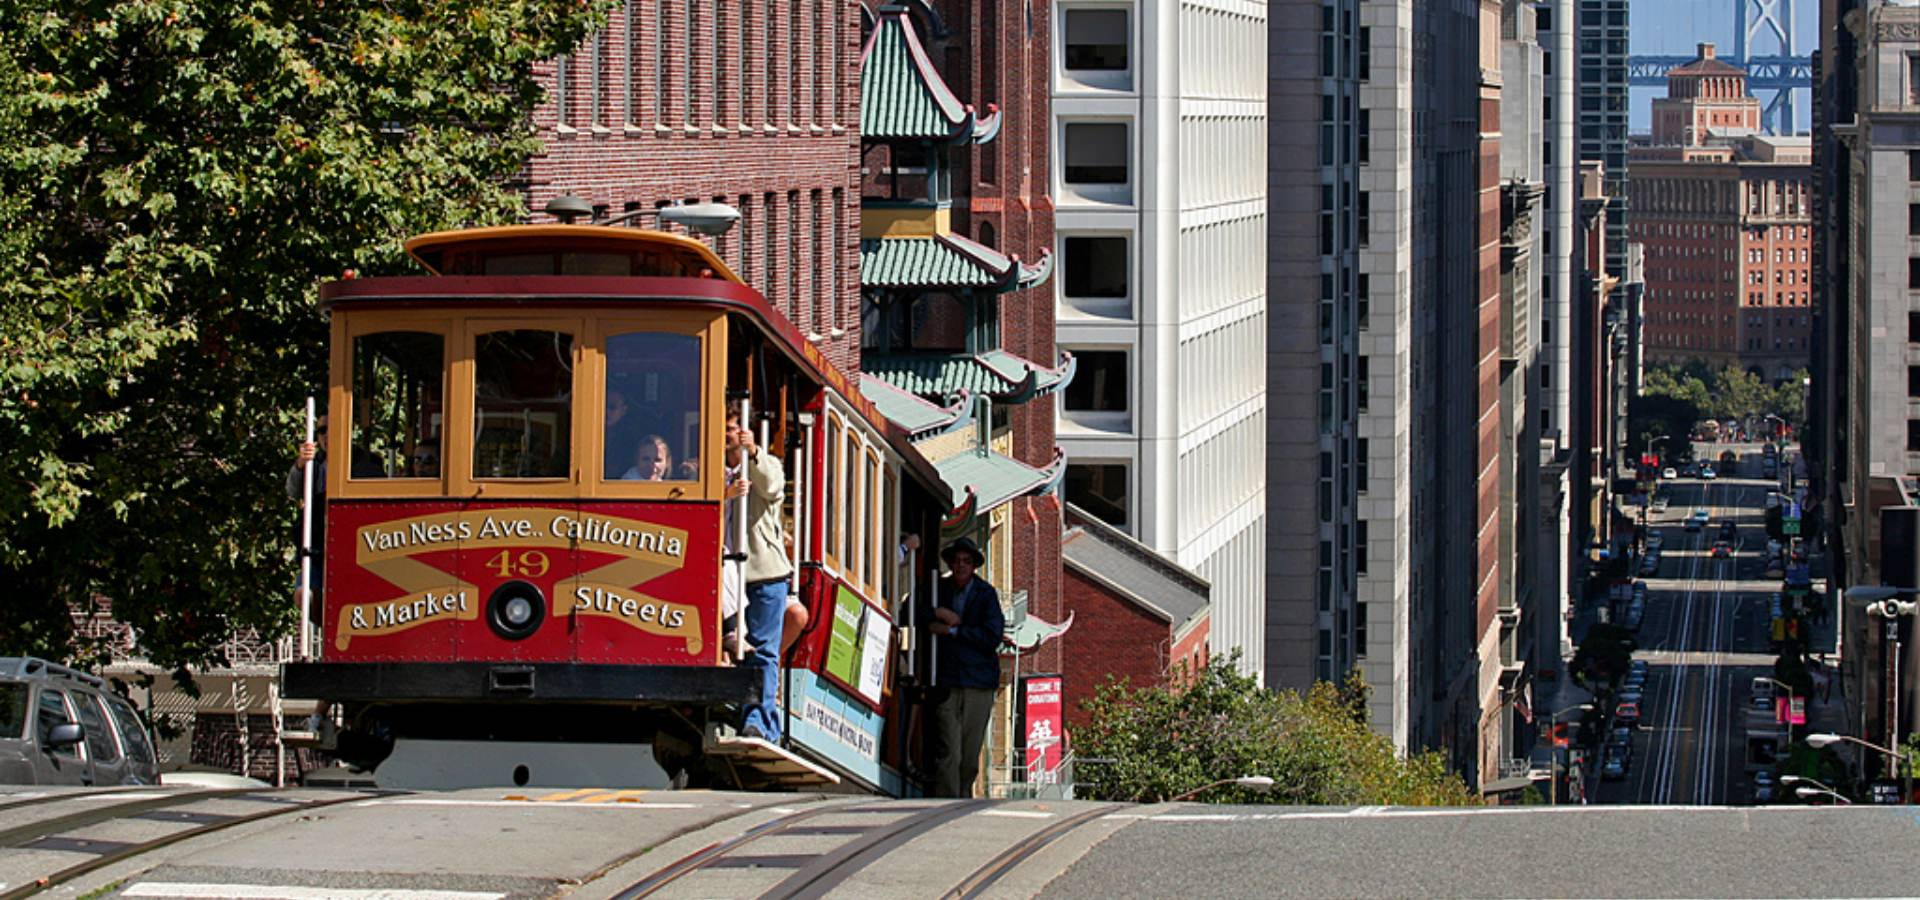 San Francisco street car comes up over a steep hill.